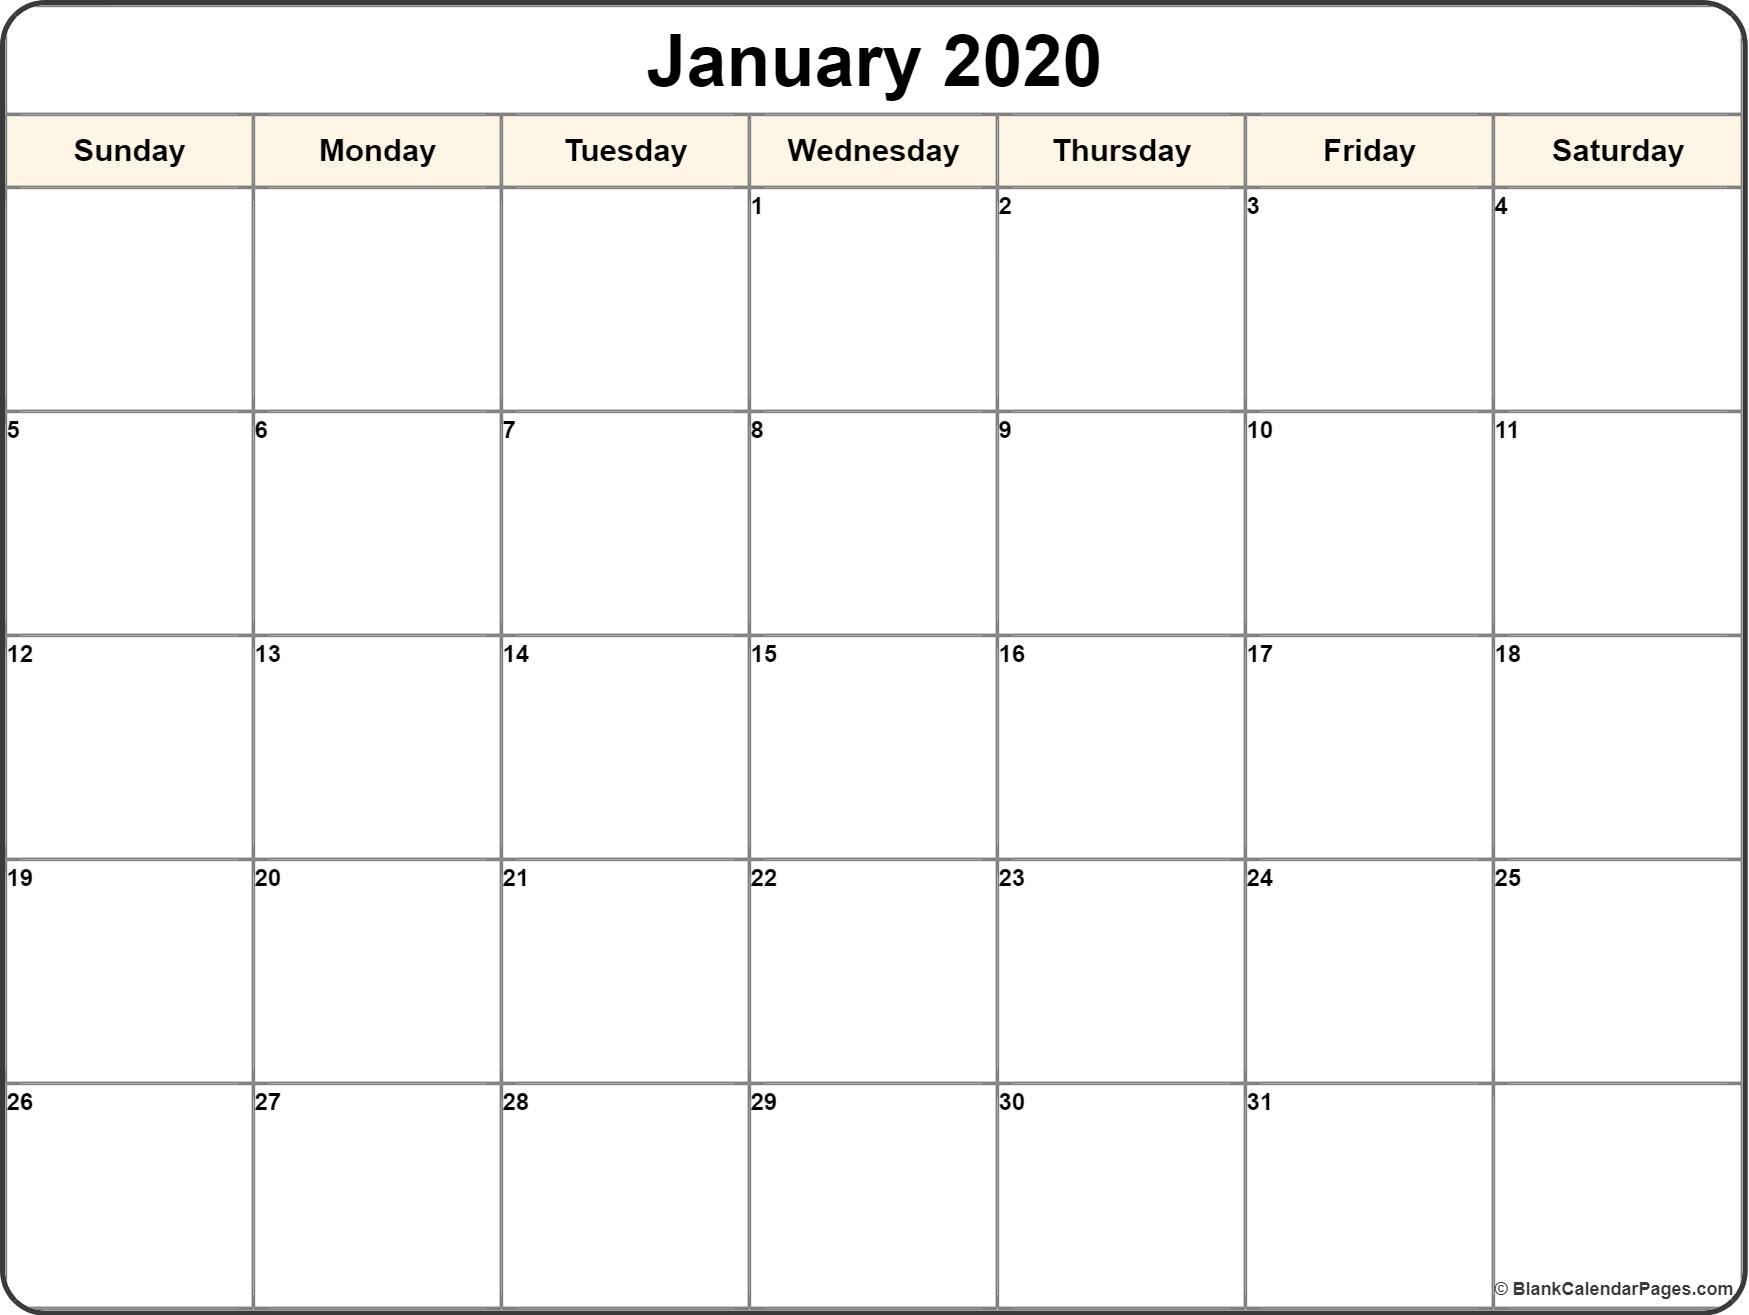 January 2020 Calendar | Free Printable Monthly Calendars Free Printable Calendar January 2020